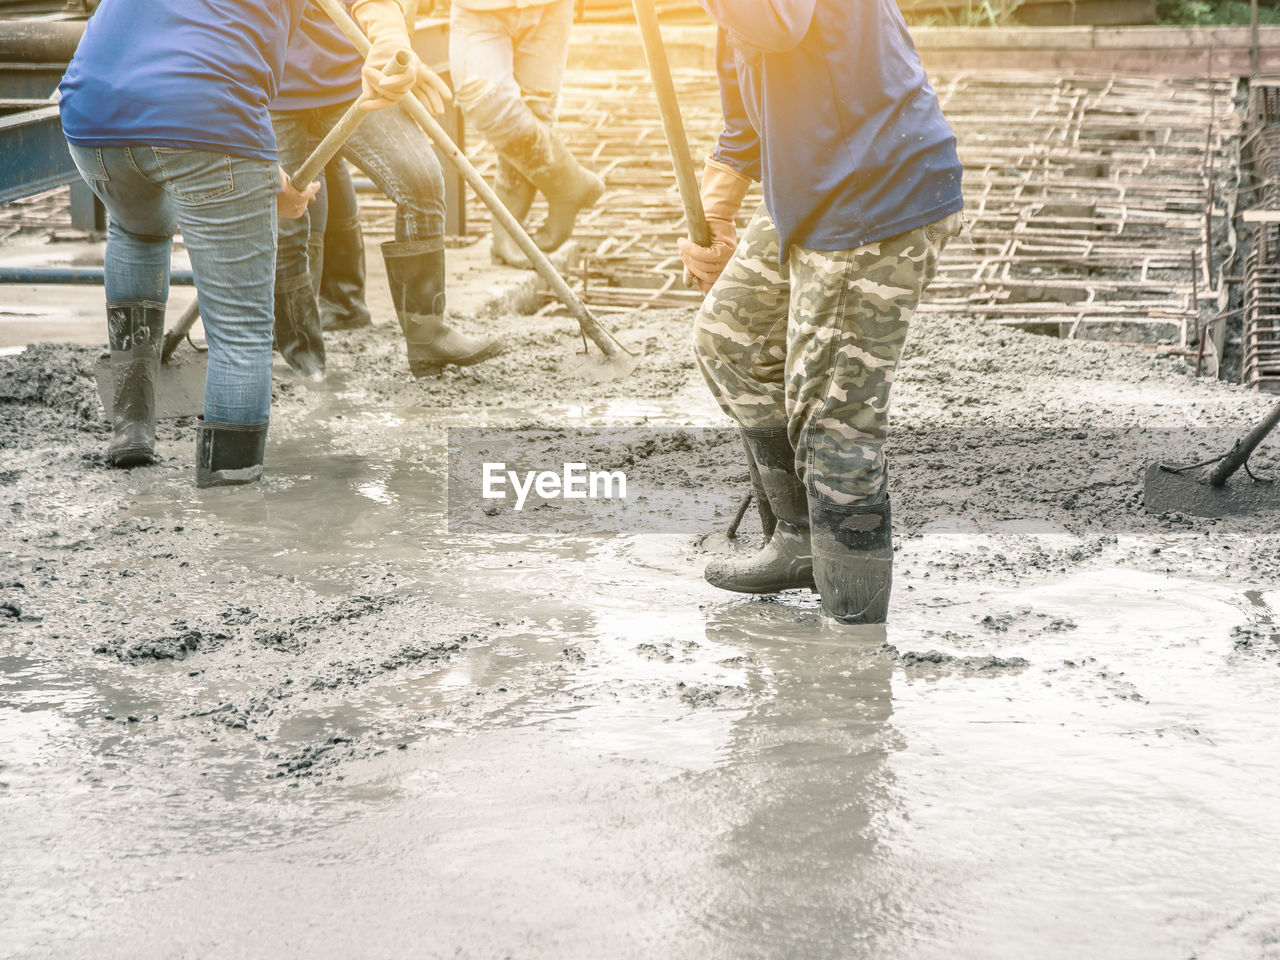 water, working, men, occupation, adult, nature, low section, standing, construction site, people, construction industry, day, industry, environment, sunlight, outdoors, mature men, rubber boot, flowing water